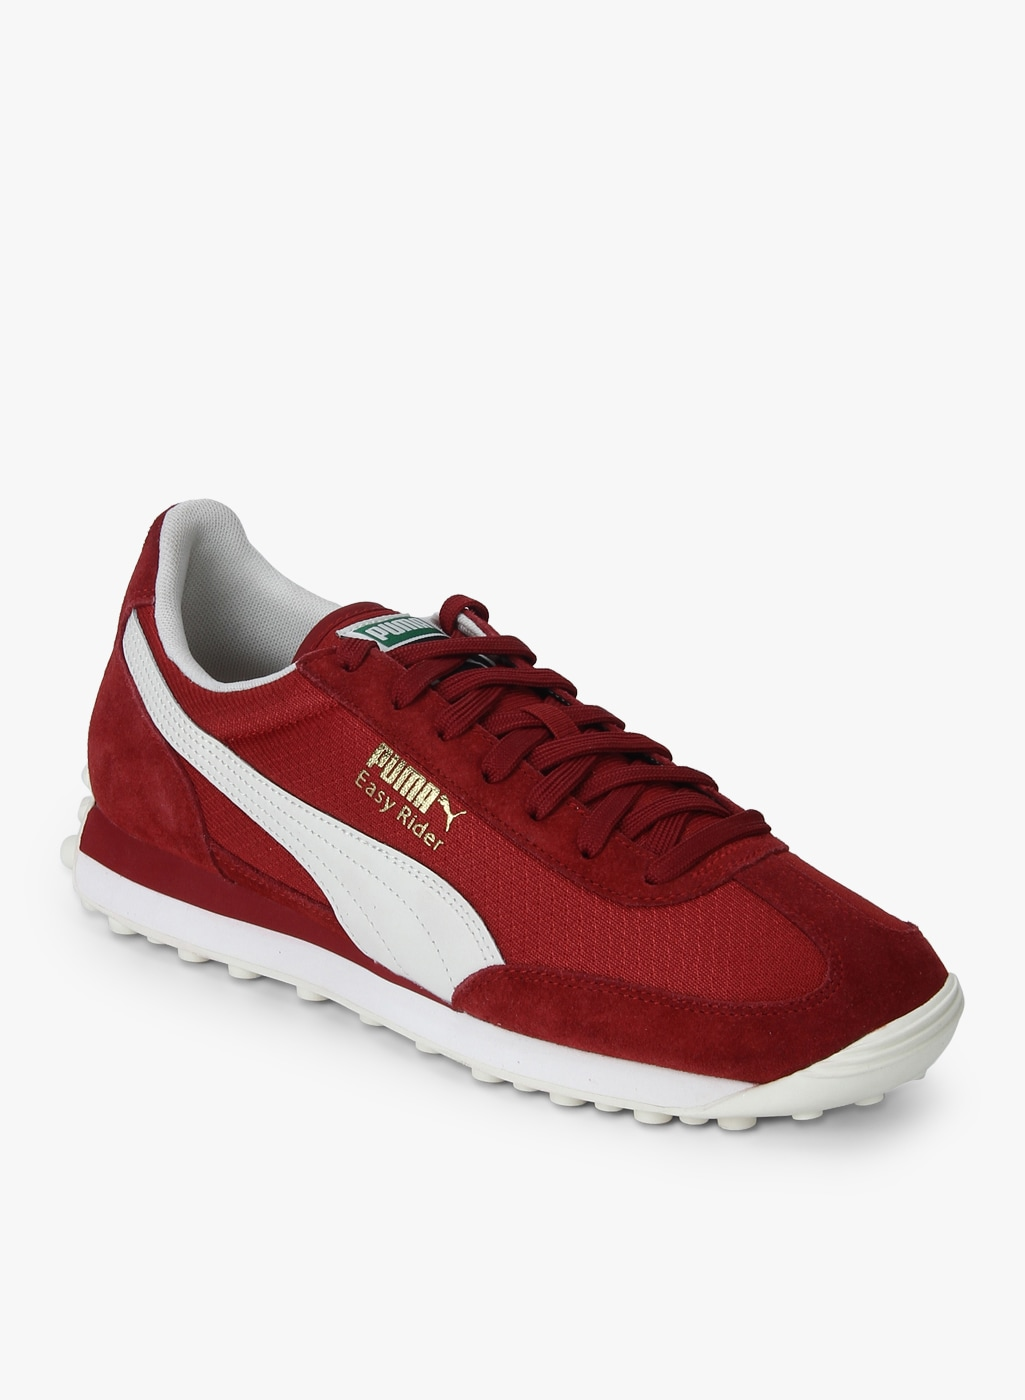 b0f4773bc2c Puma Ferrari Red Casual Shoes - Buy Puma Ferrari Red Casual Shoes online in  India